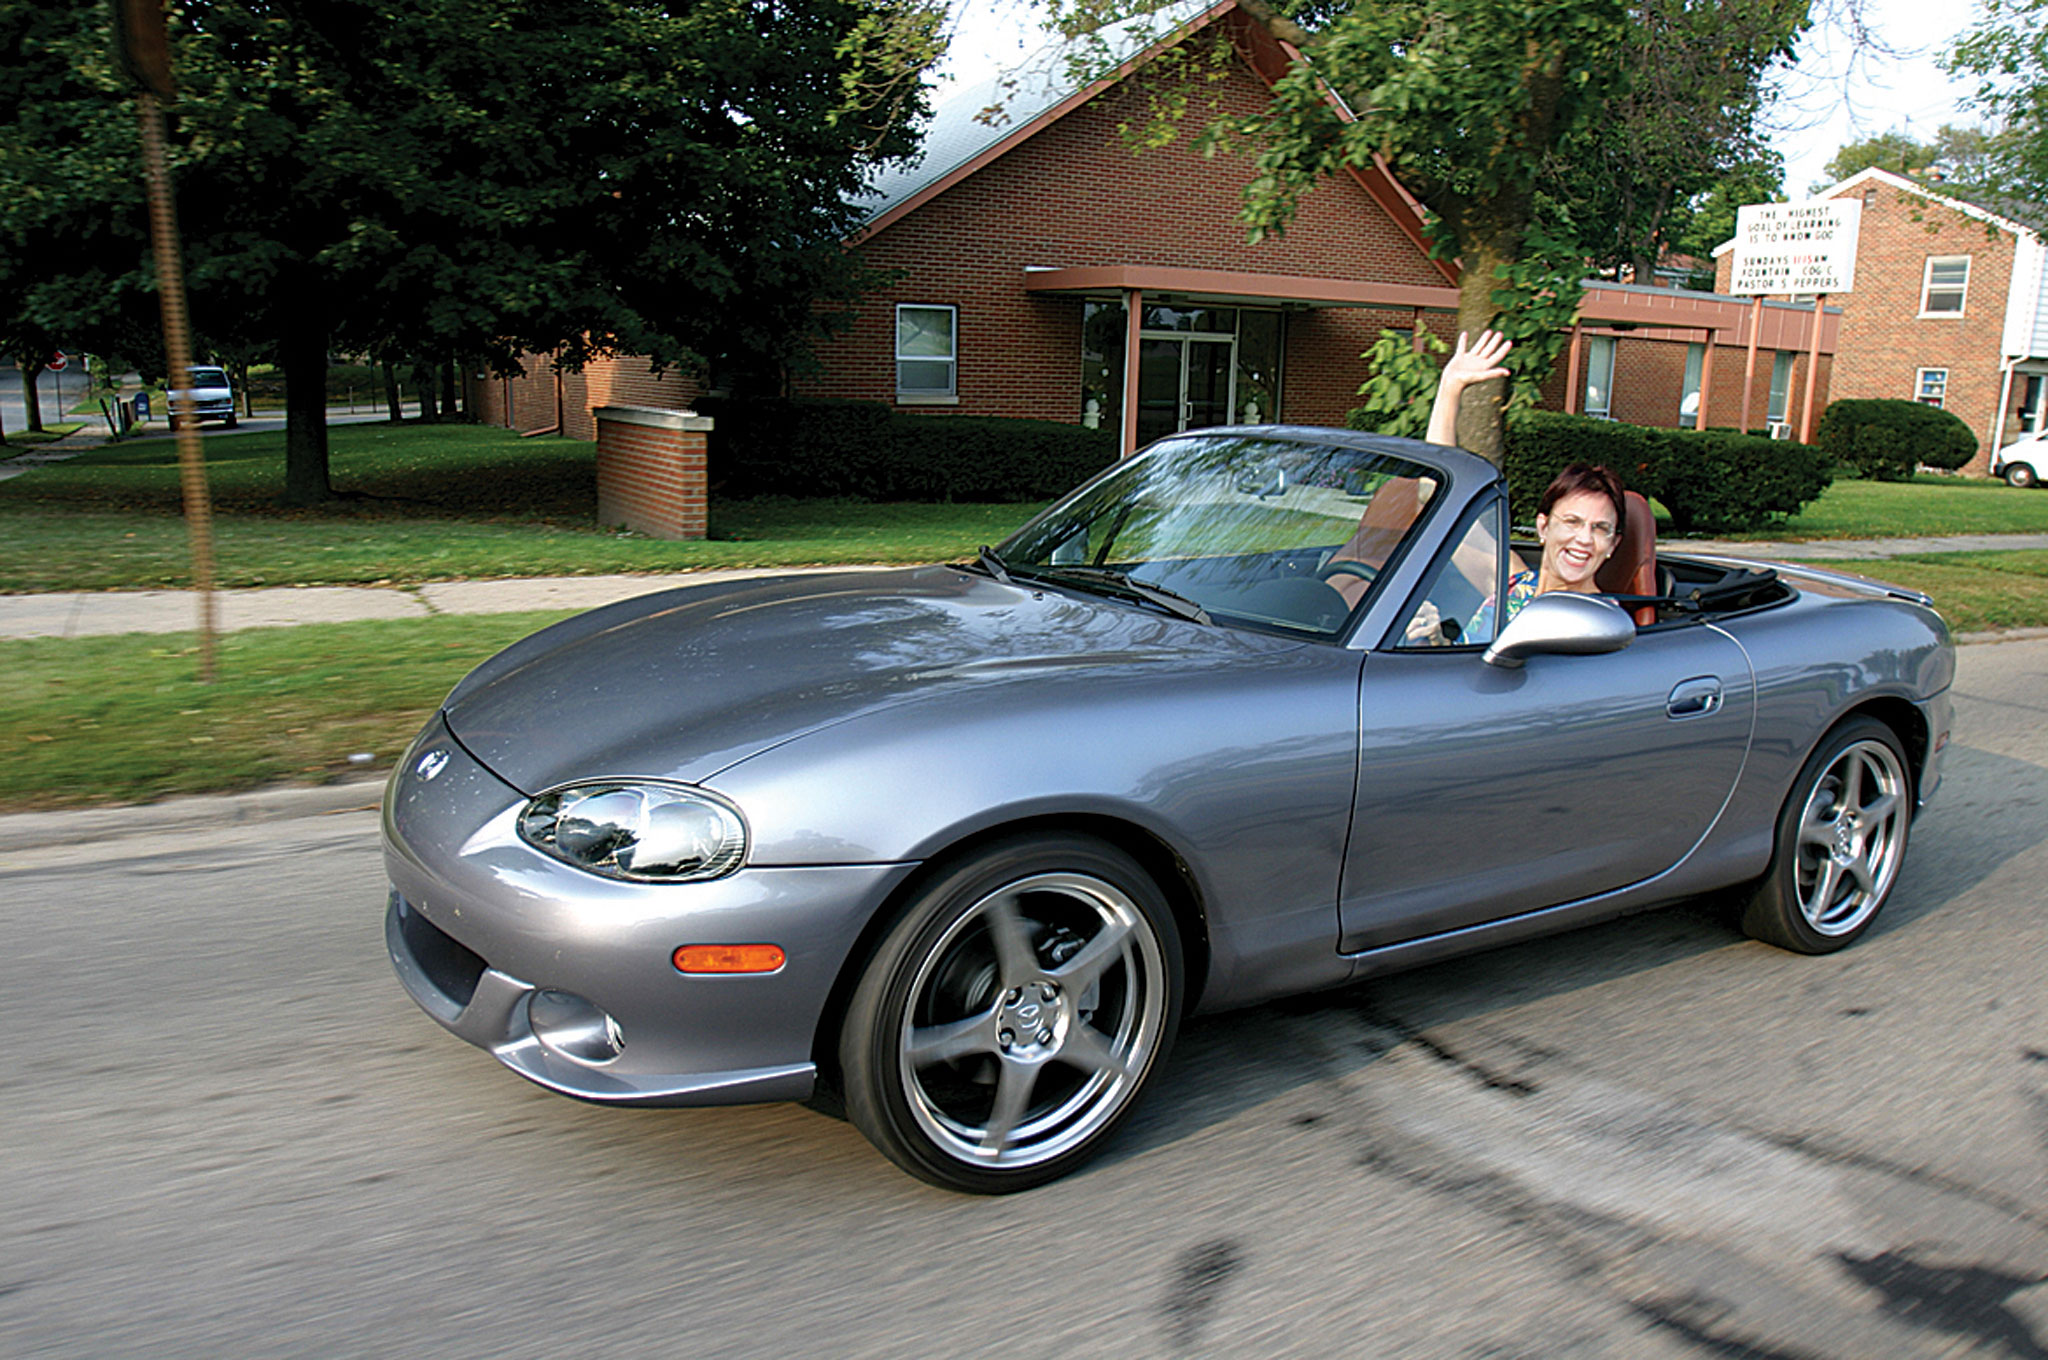 First Time S The Aoy Charm 1990 Mazda Miata Automobile